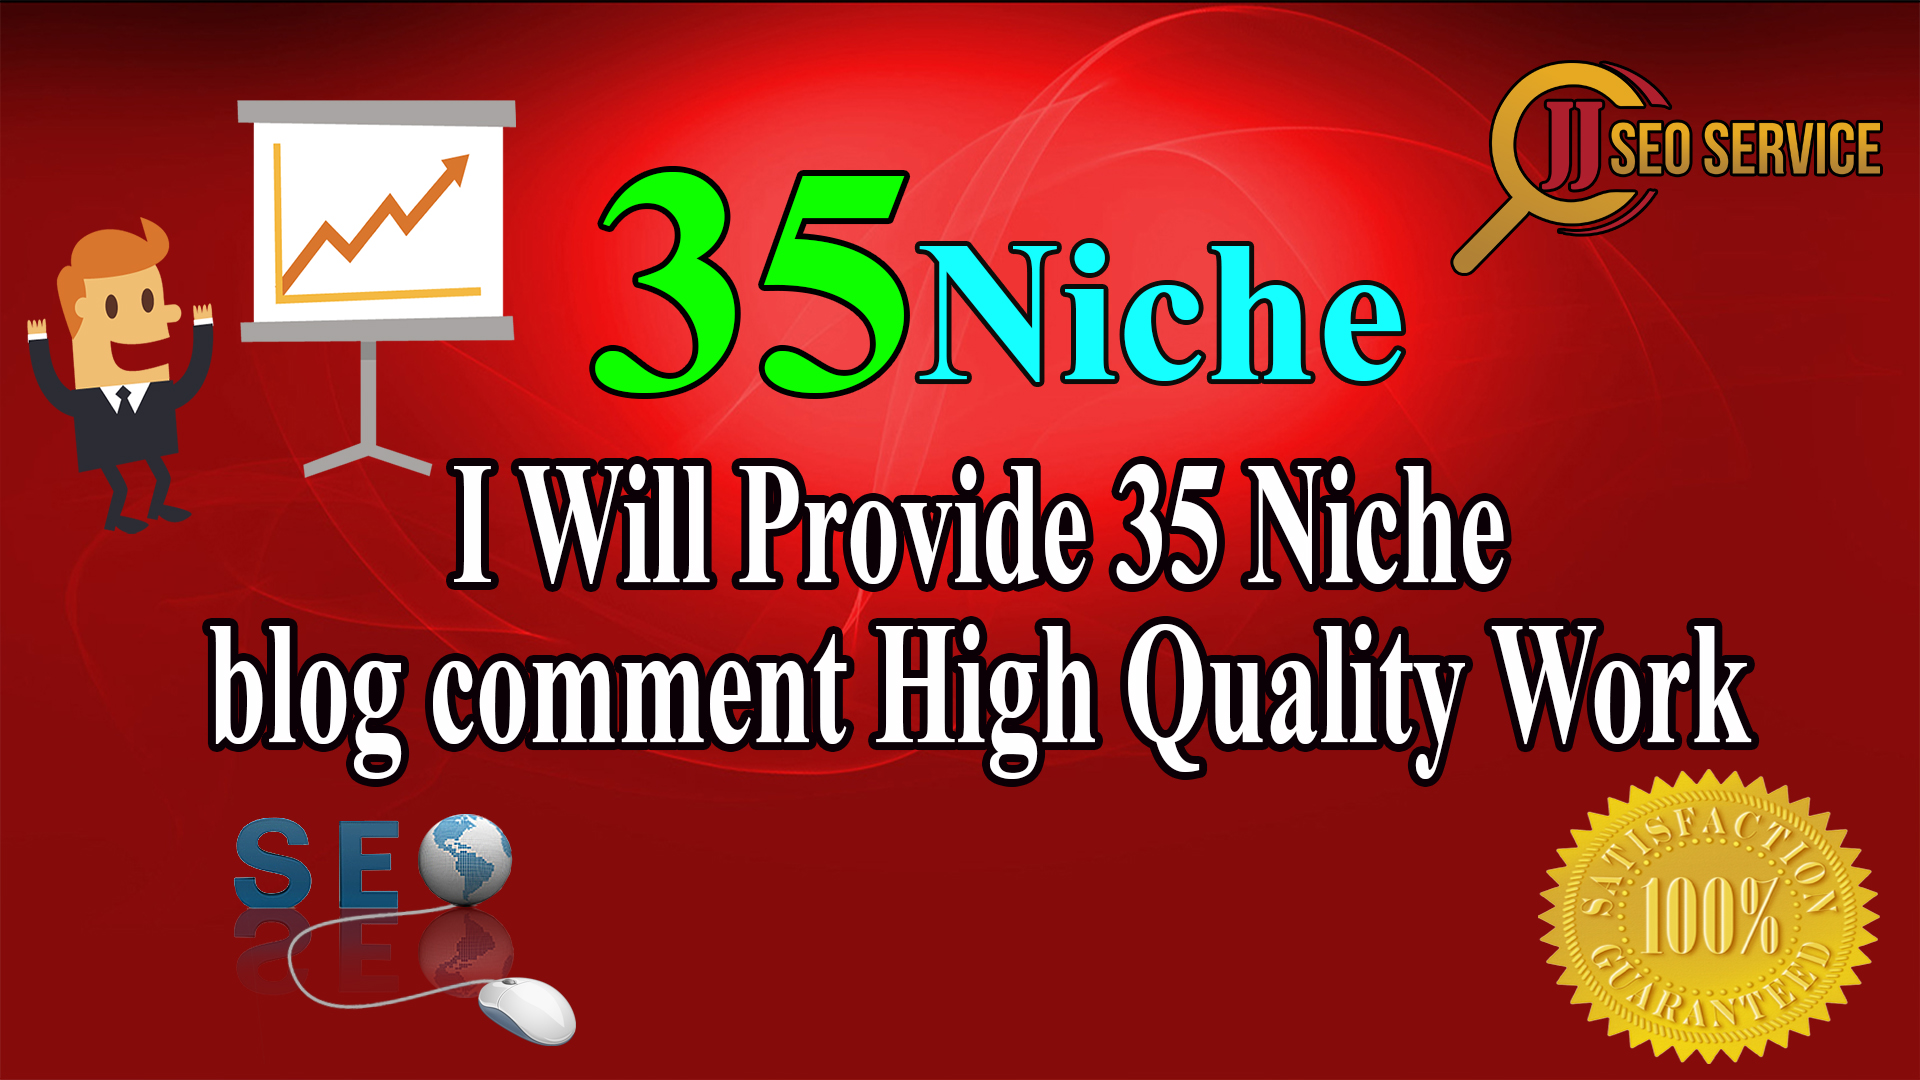 I Will Do 35 Niche Relevant Blog Comment Service .We Work Hard For Your Success .The Order Now Button For Manual Blog Commenting Service For High PR.